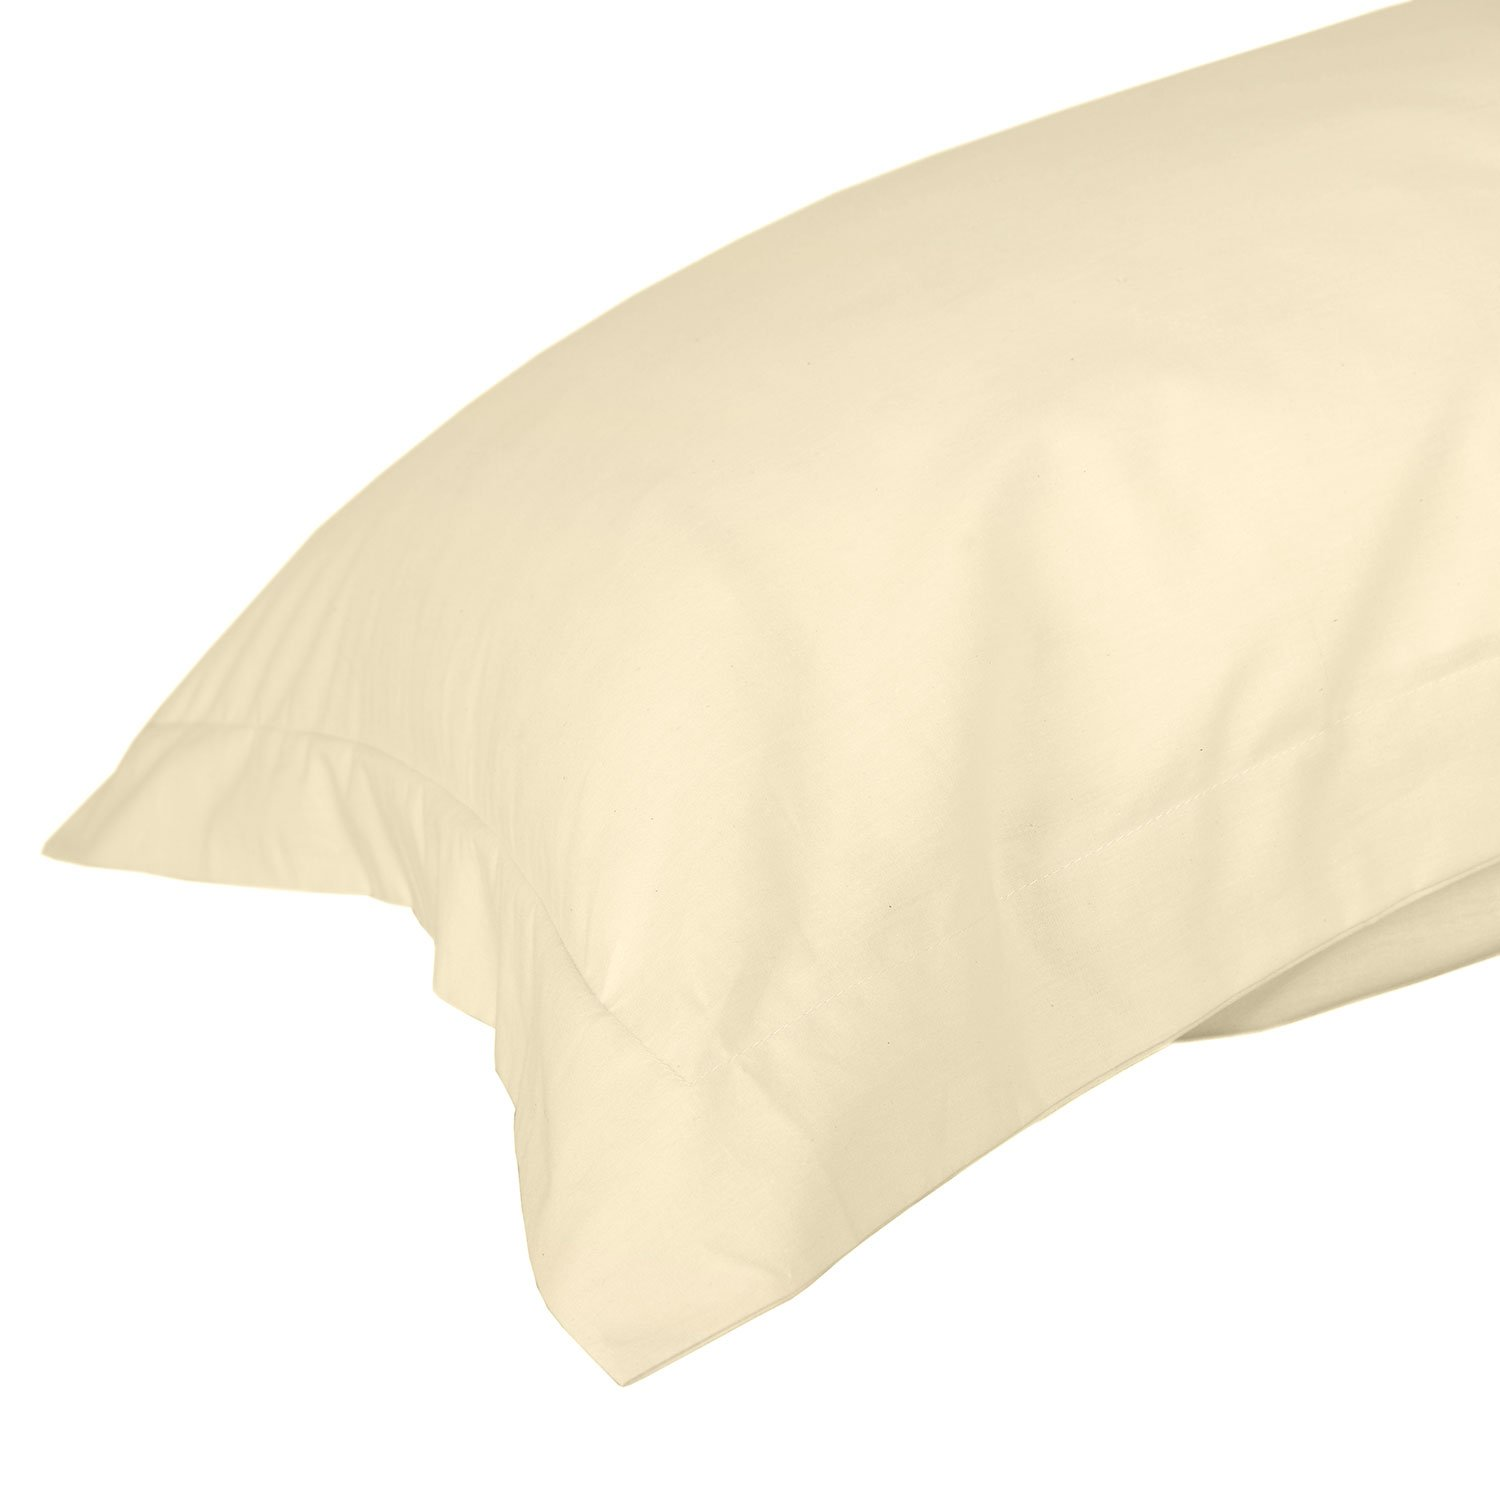 Homescapes Black Oxford Pillowcase 100% Egyptian Cotton 200 Thread Count Percale Anti Allergic Others